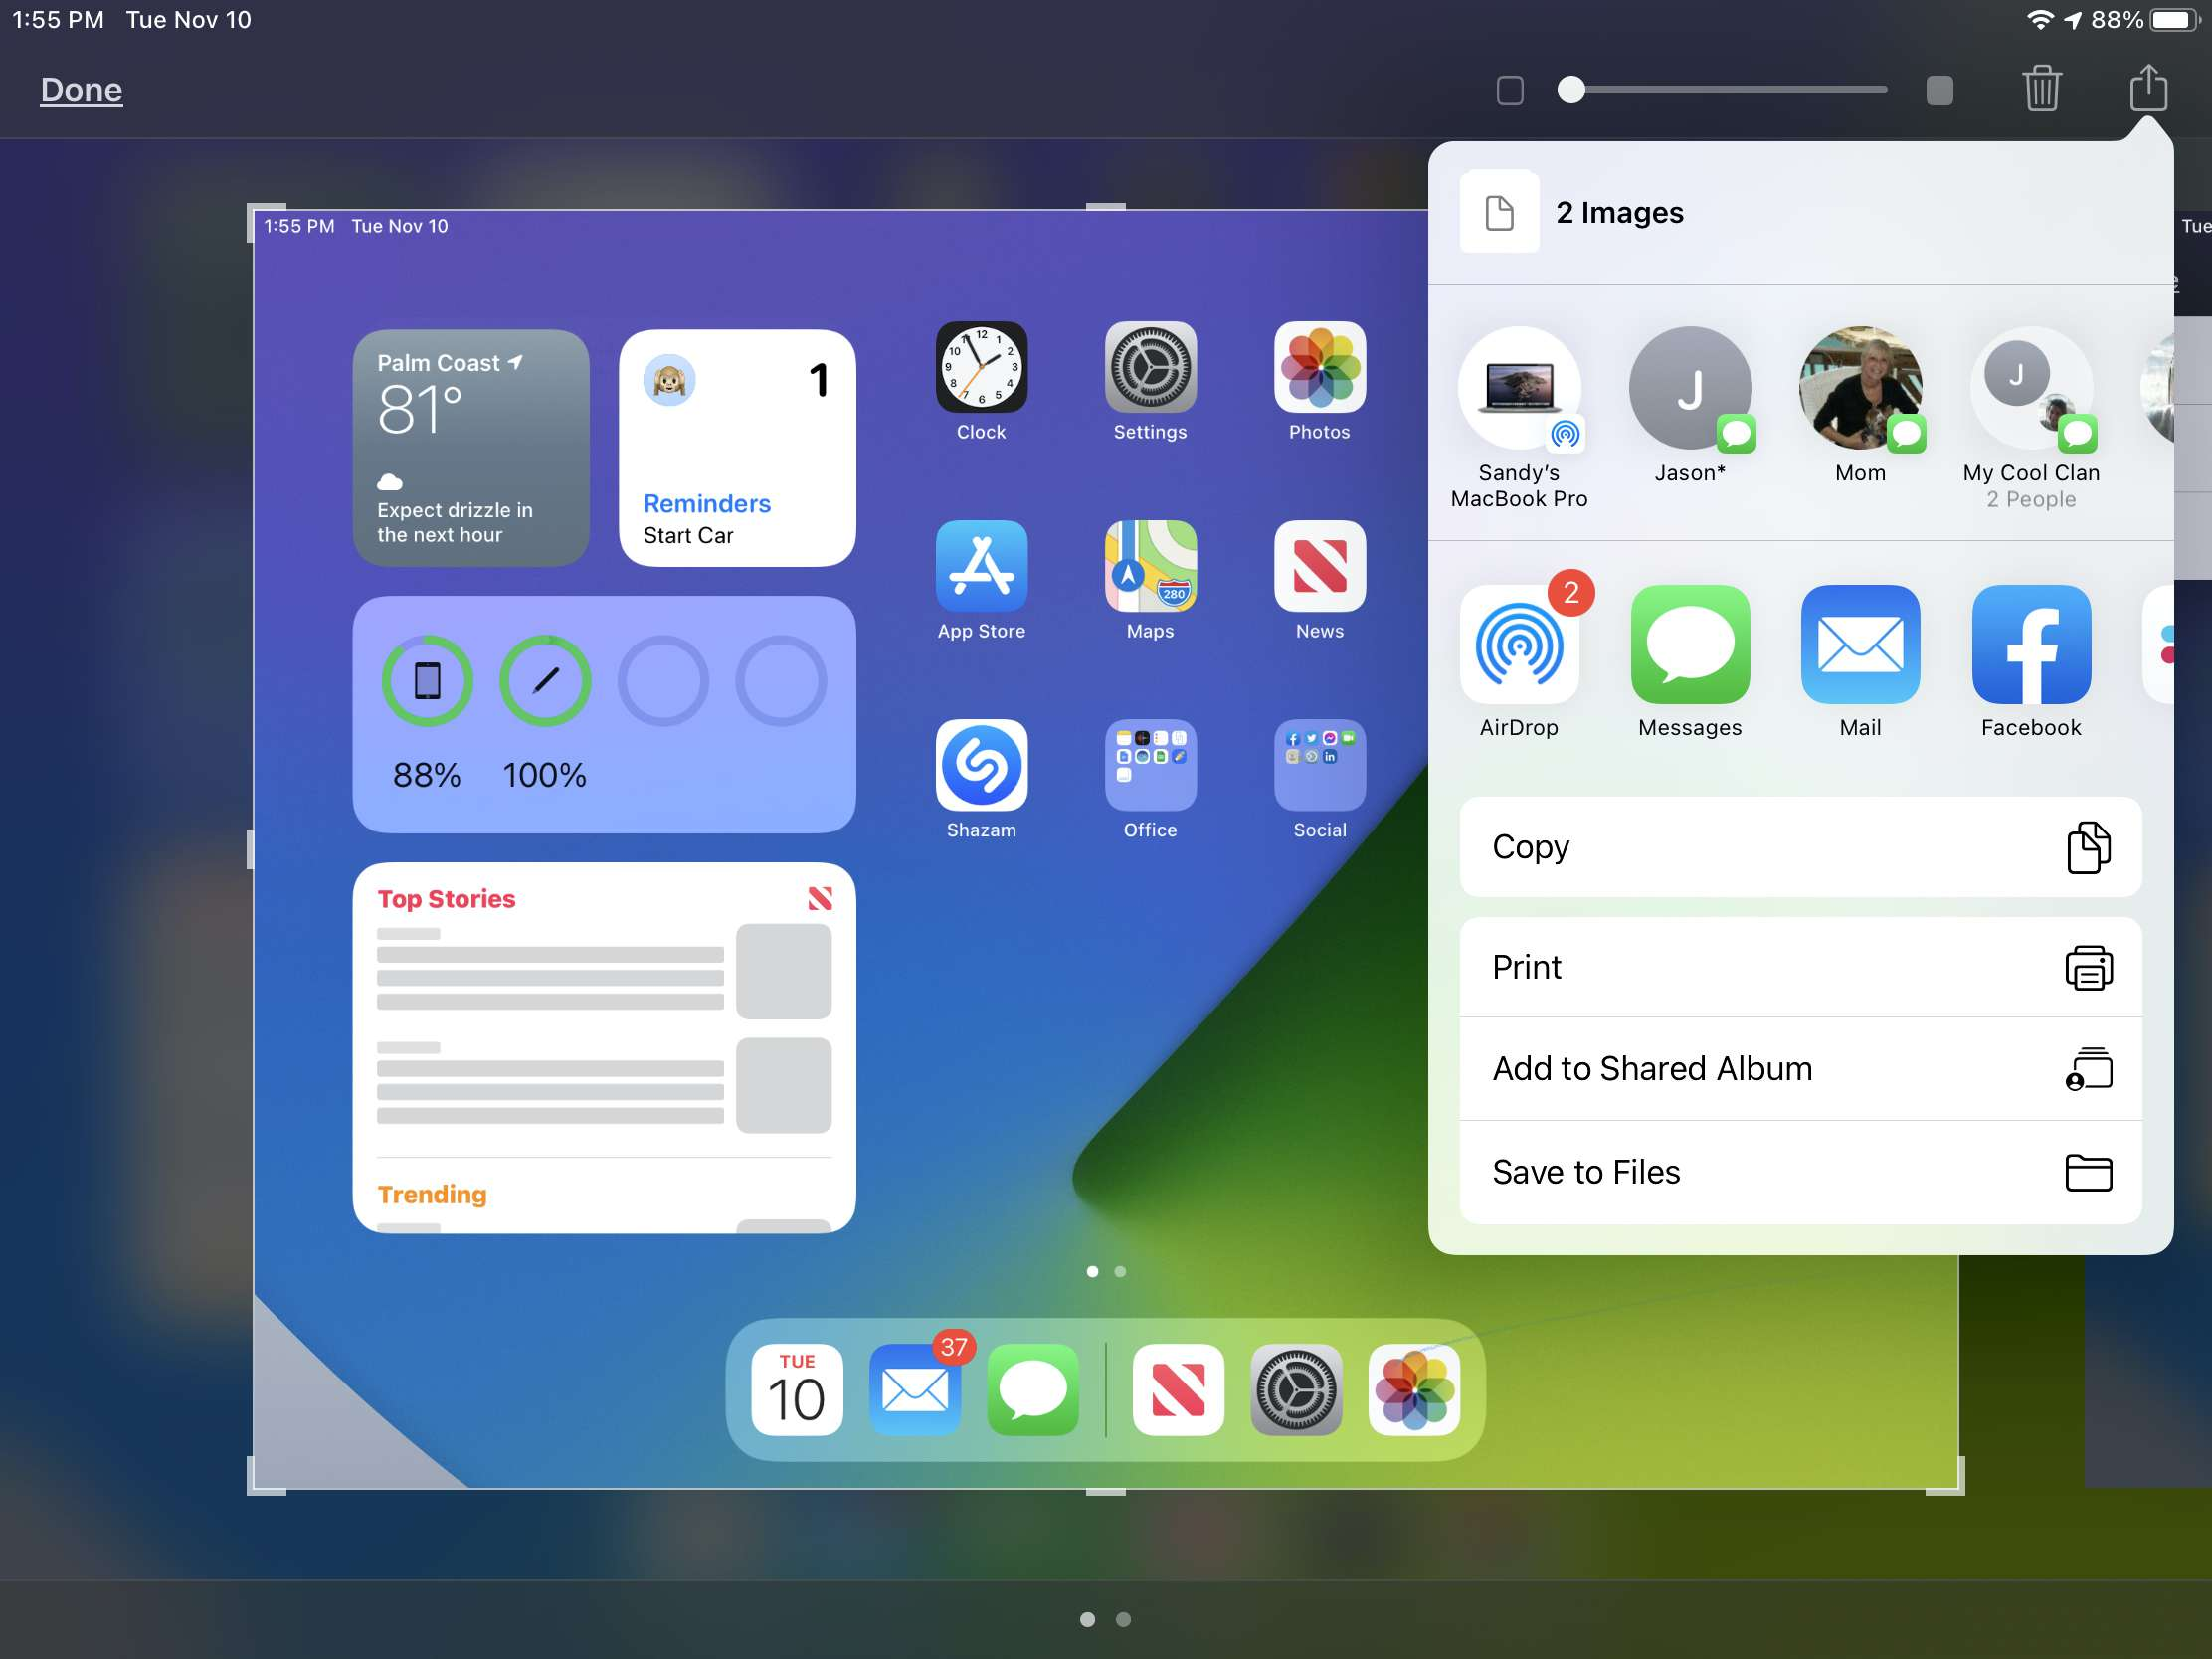 Tap the Share Button for a Screenshot on iPad